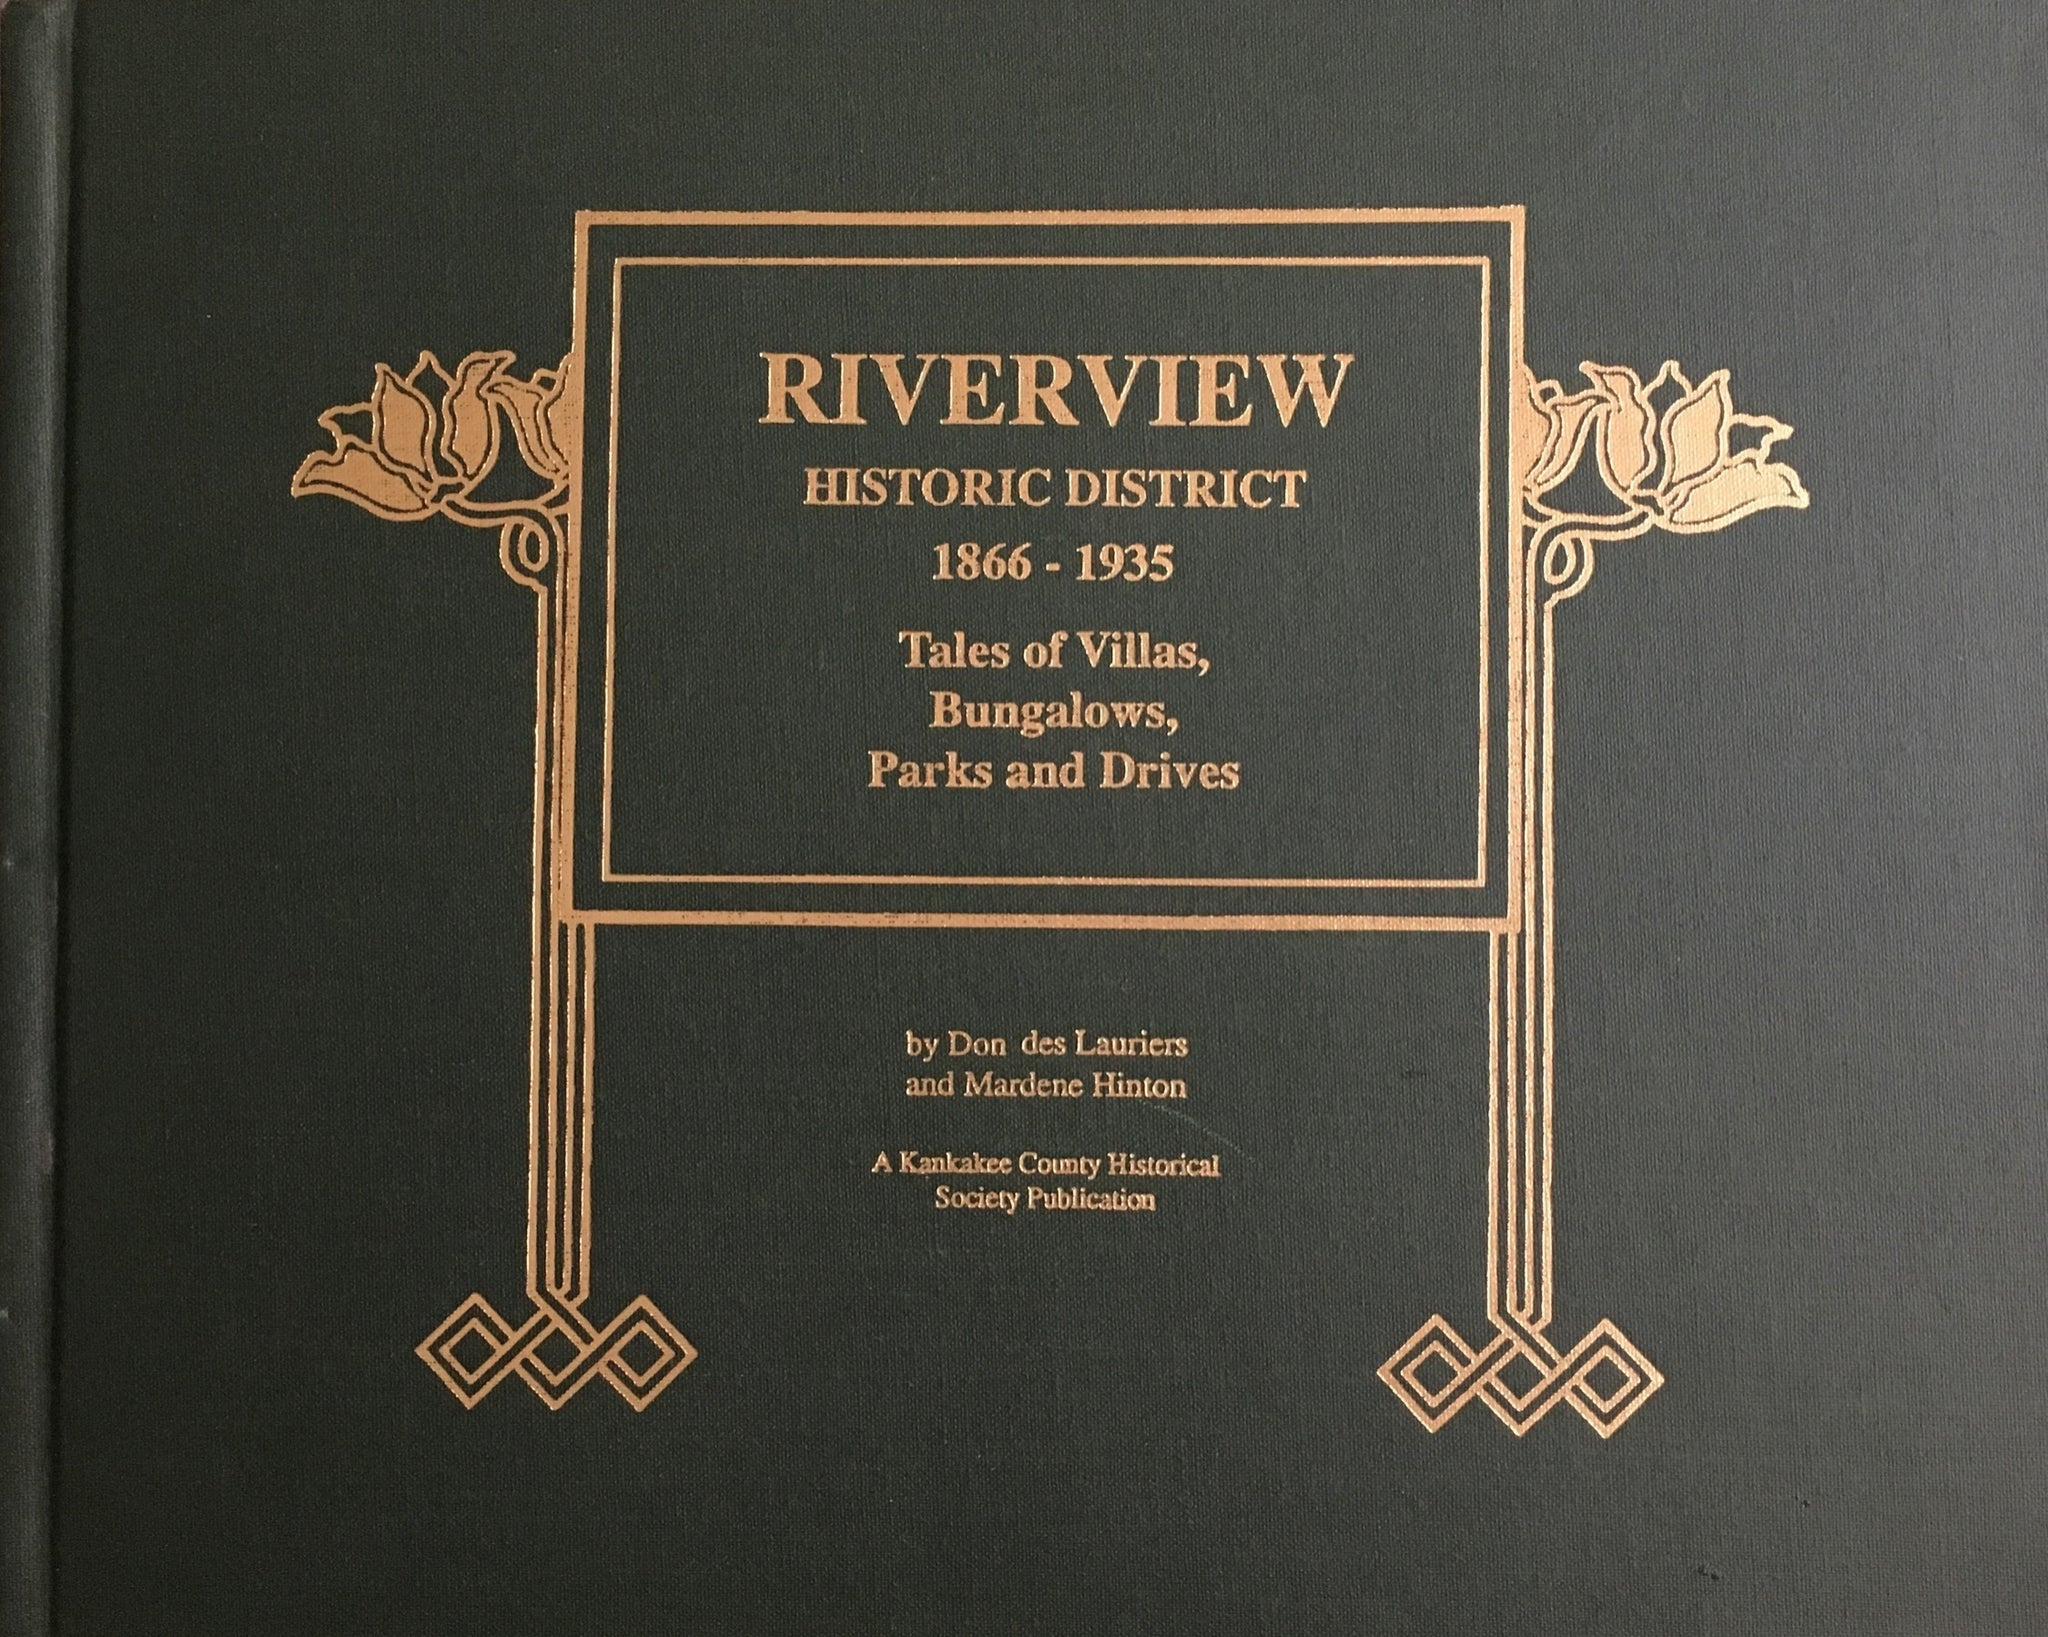 RIVERVIEW HISTORIC DISTRICT 1866-1935: Tales of Villas, Bungalows, Parks and Drives